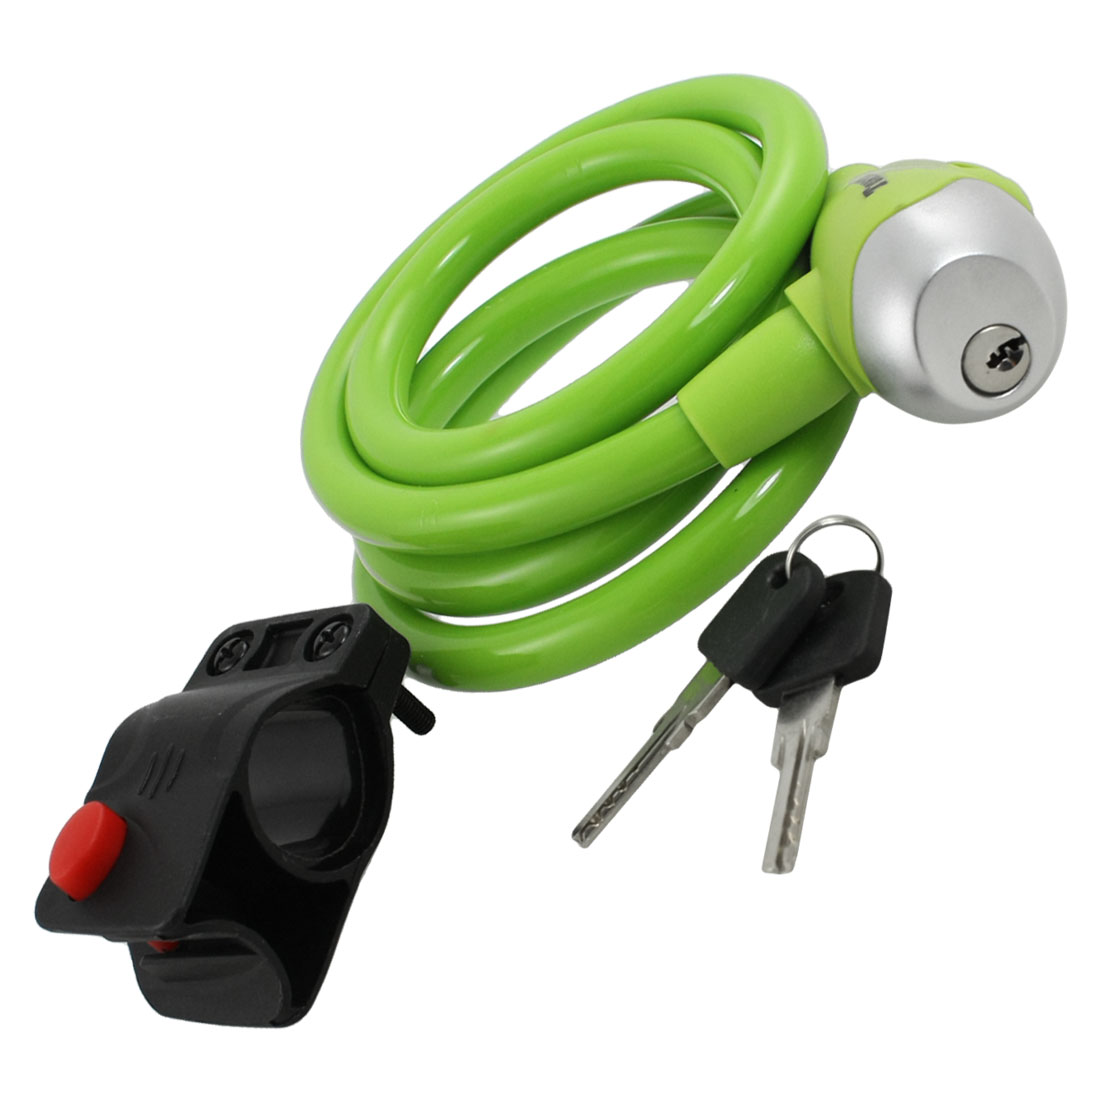 Motorcycle Bicycle Green Plastic Covered Steel Cable Lock w 2 Keys